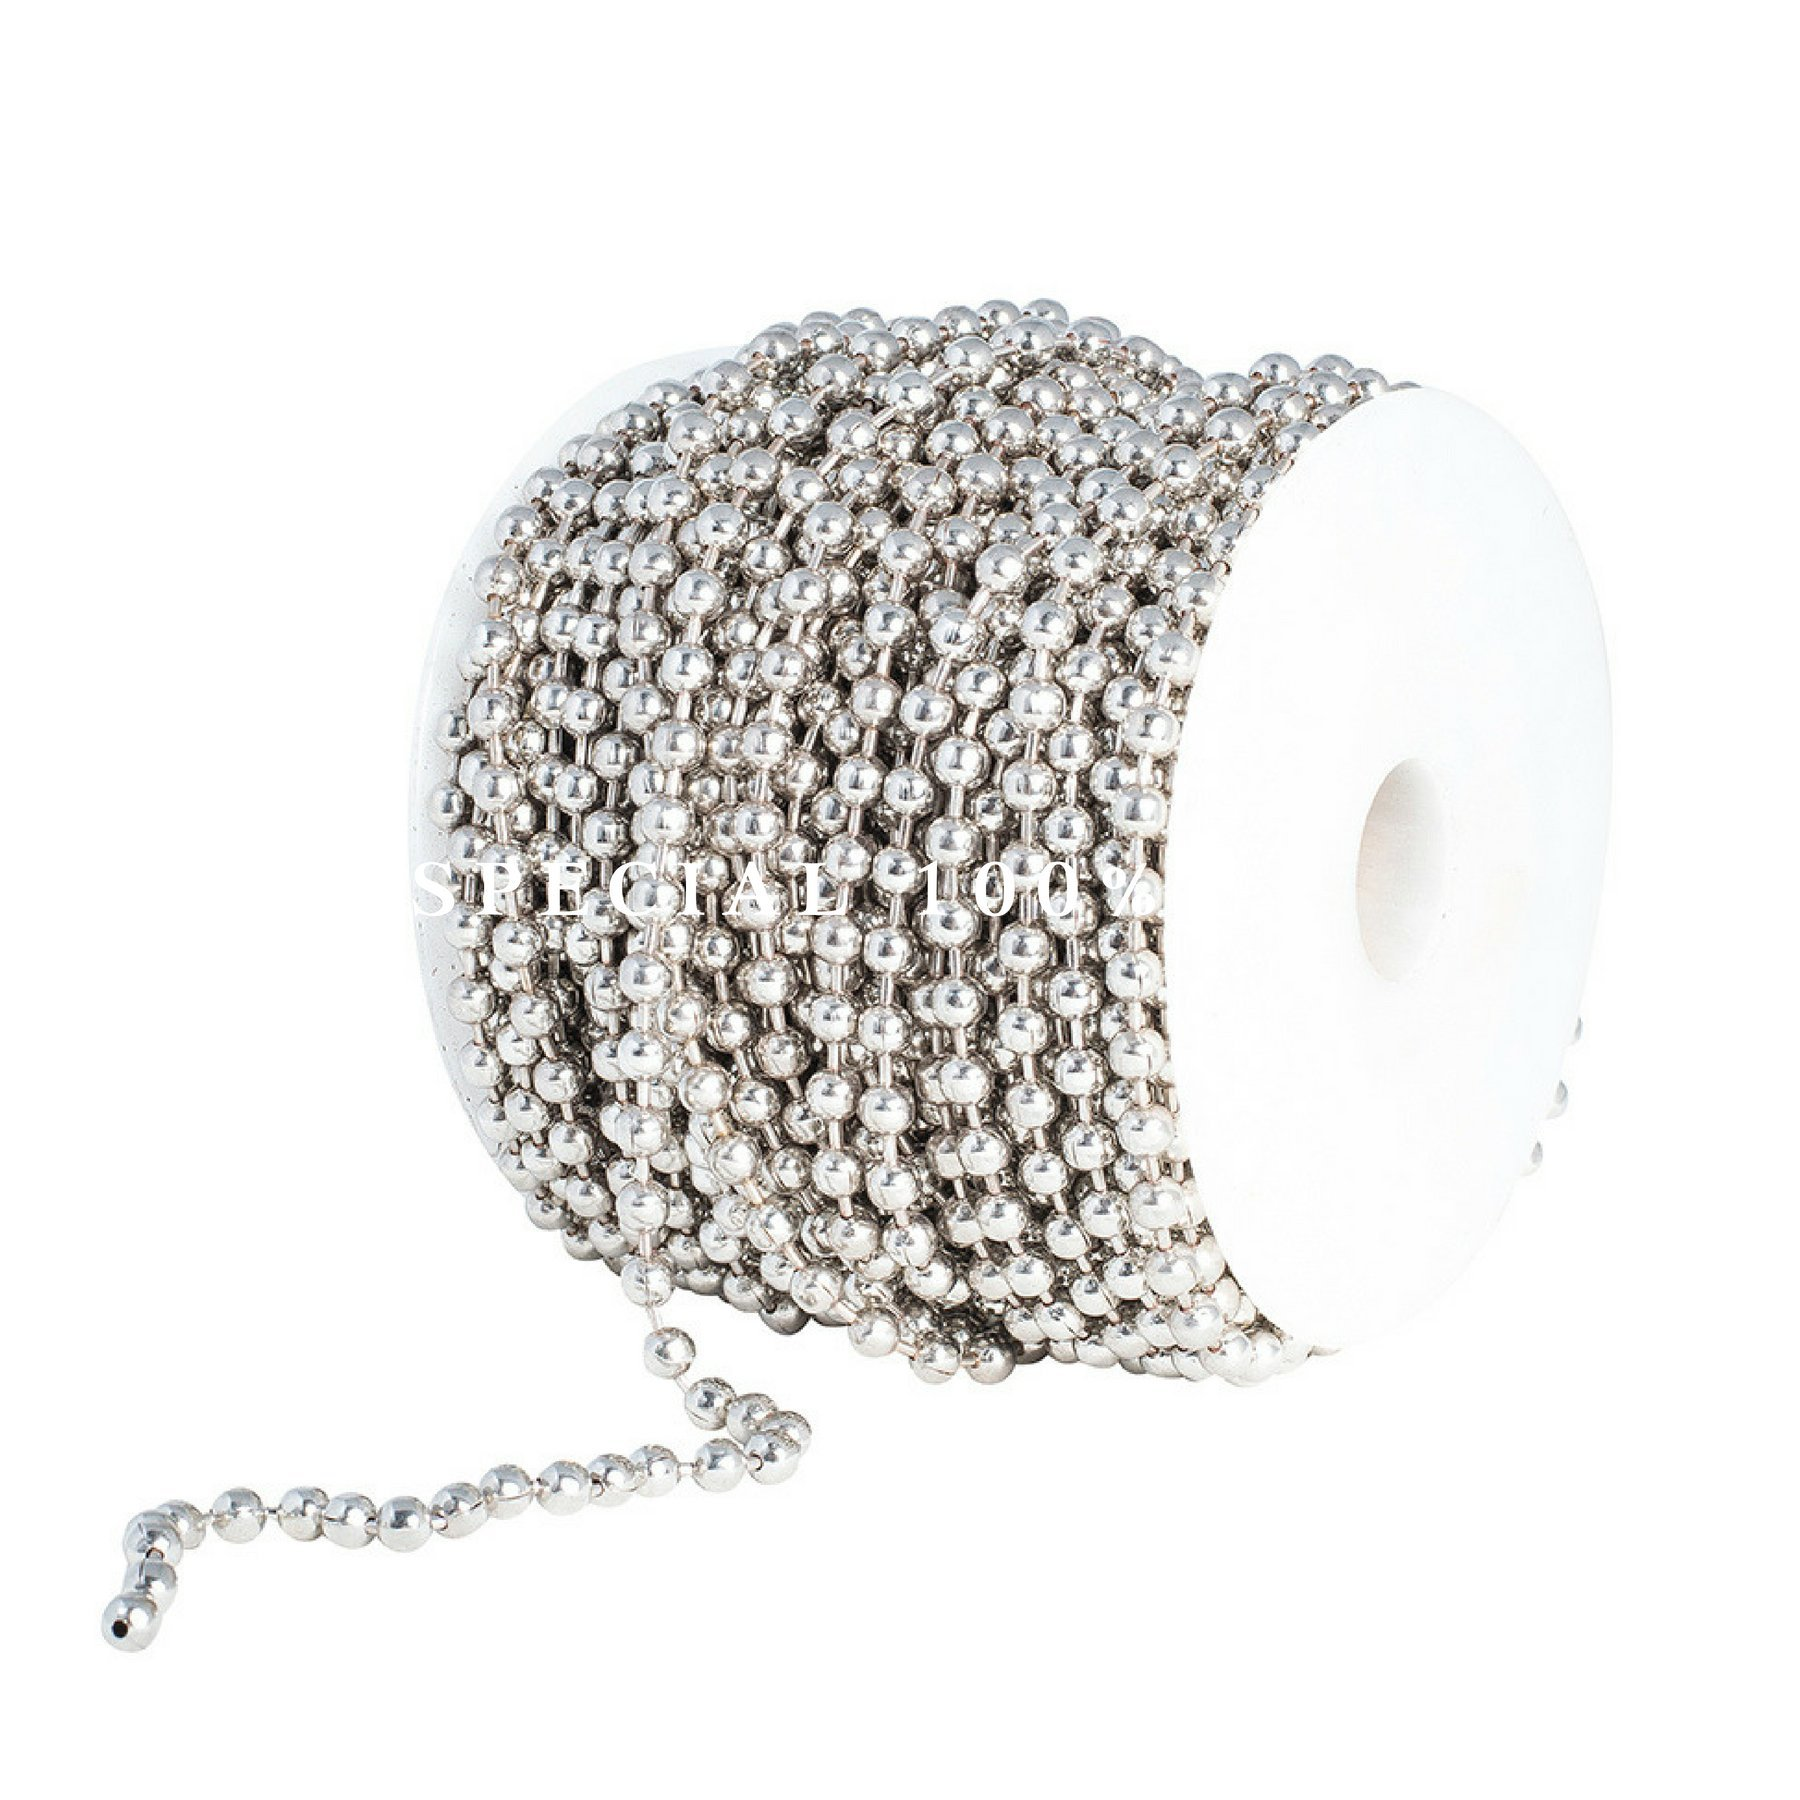 Ball Chain Spool 5mm Bead Diameter, Large Nickel Plated Steel 100 Feet (33 Yards) Included 30 Pc Matching 5mm Connectors by Special100%